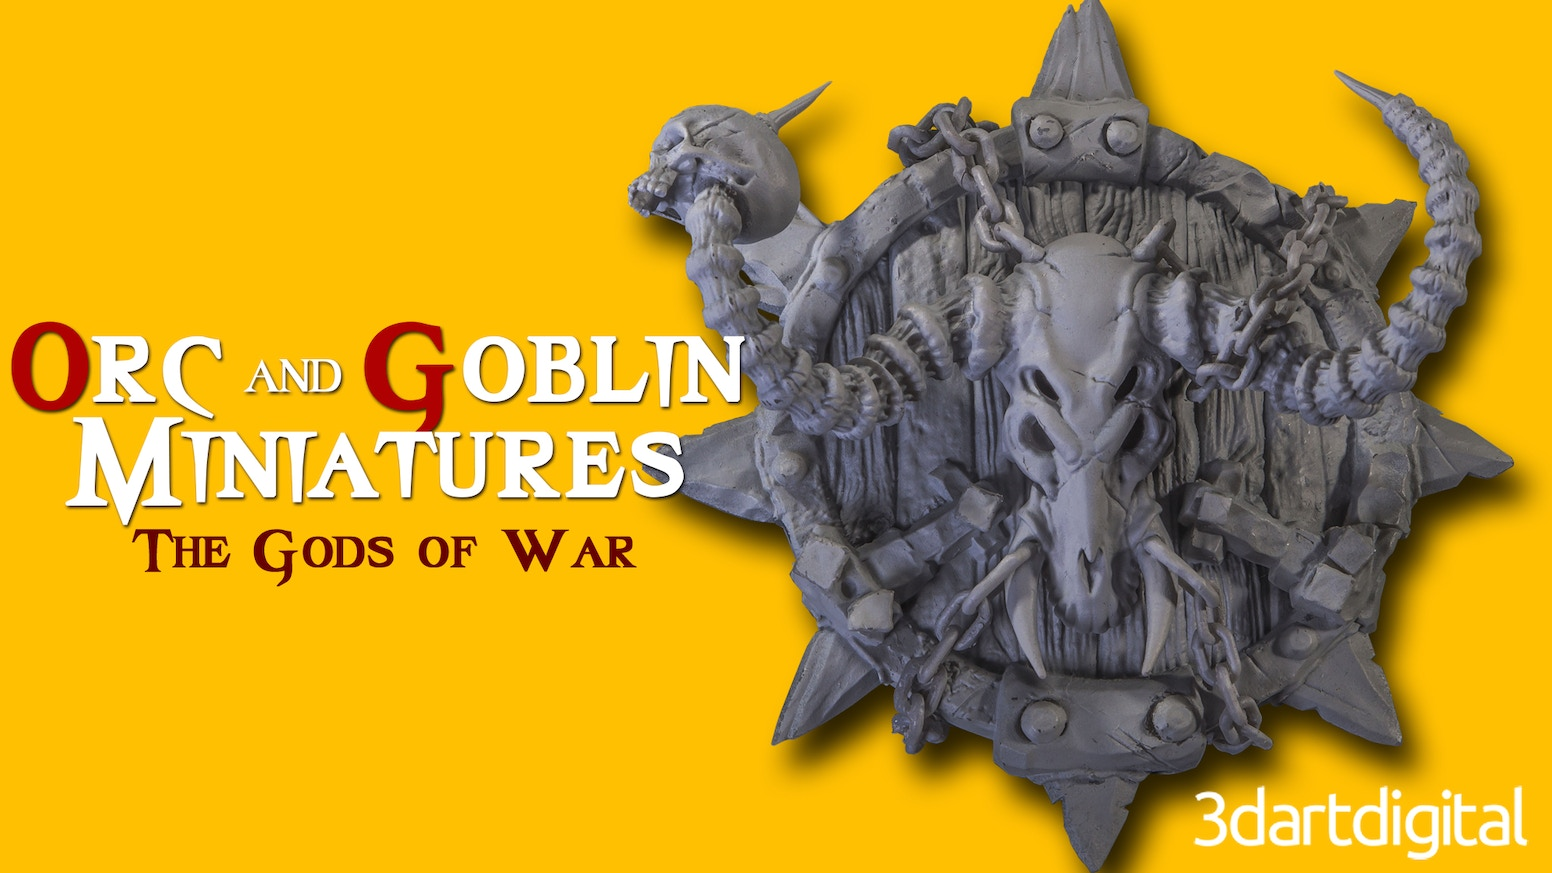 3dArtDigital wants to create Orc and Goblin miniatures with interchangeable armor, weapons, and accessories as multi-part model kits.